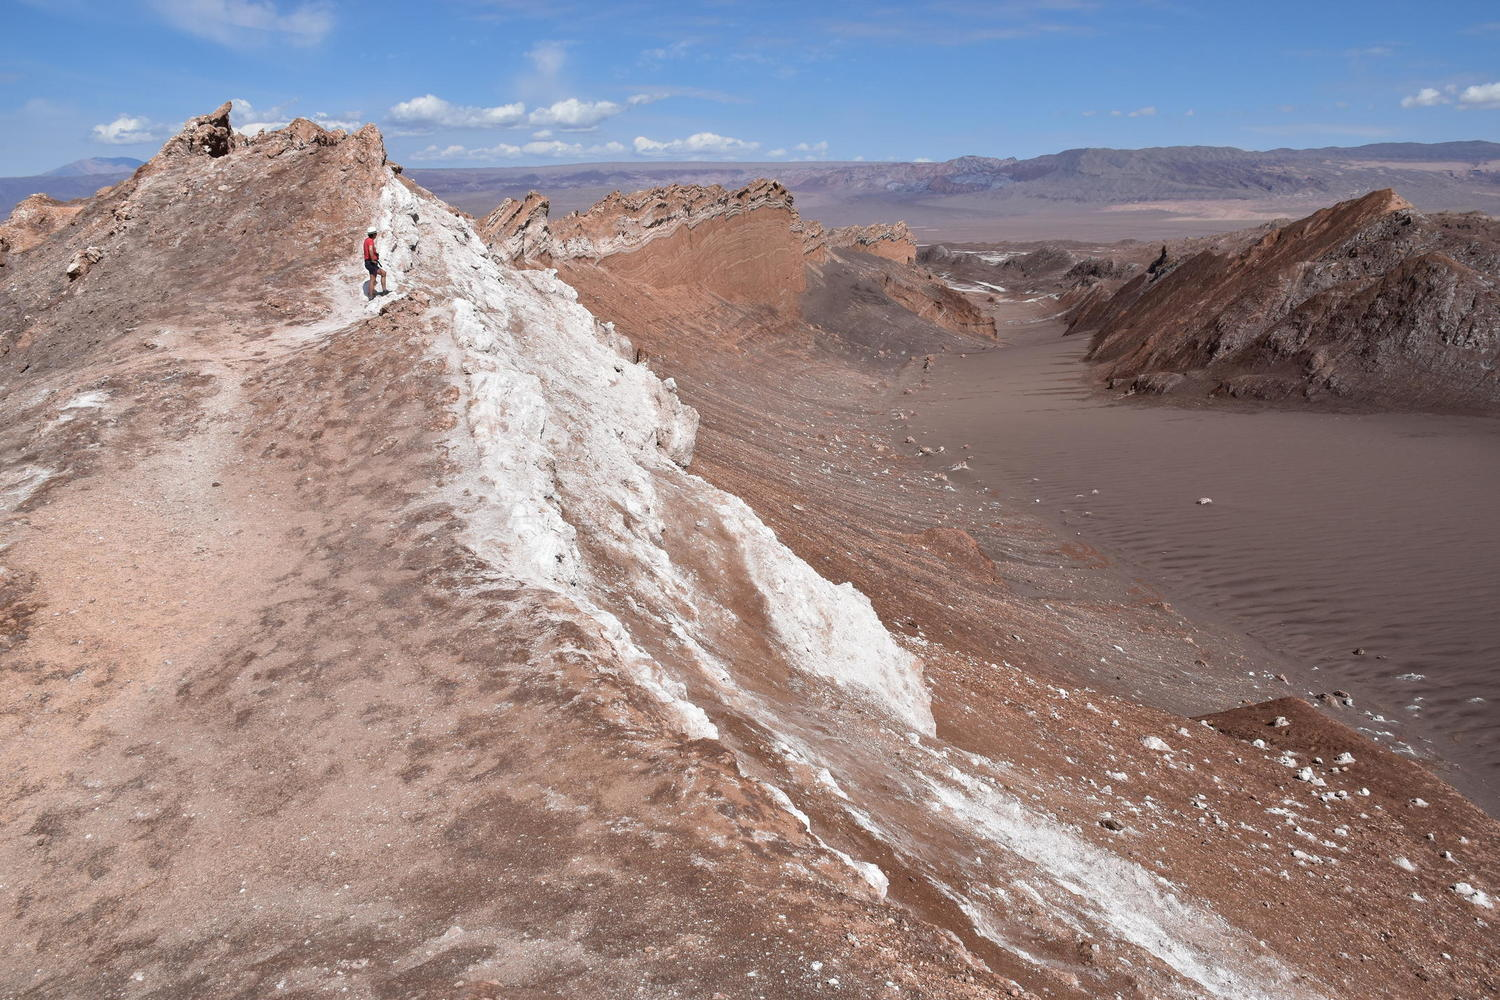 The martian landscapes of the Atacama